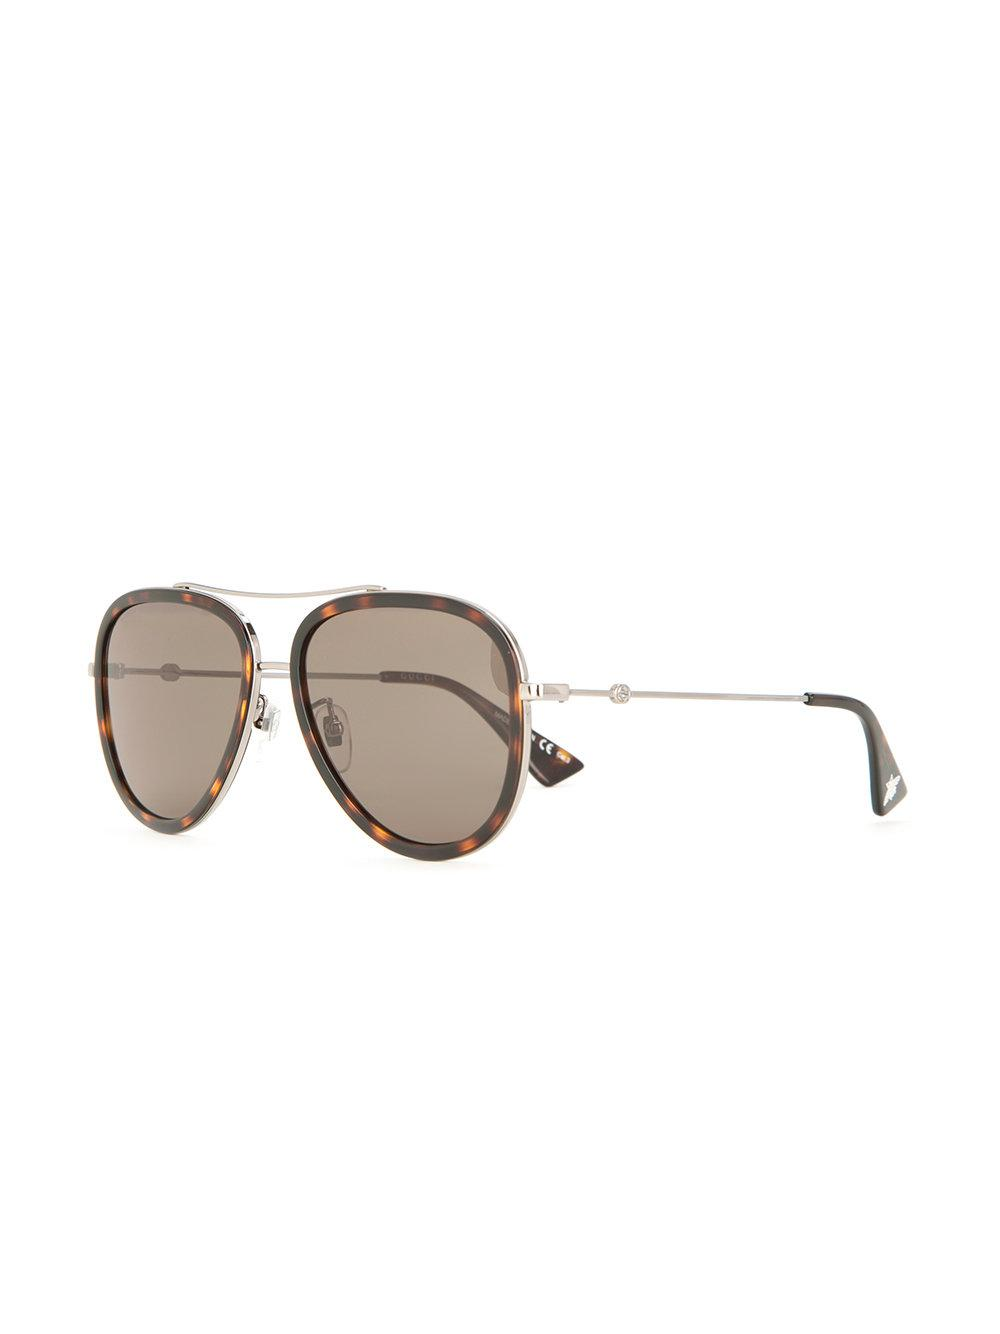 fcc7e922af7 Gucci Aviator Sunglasses in Brown - Lyst